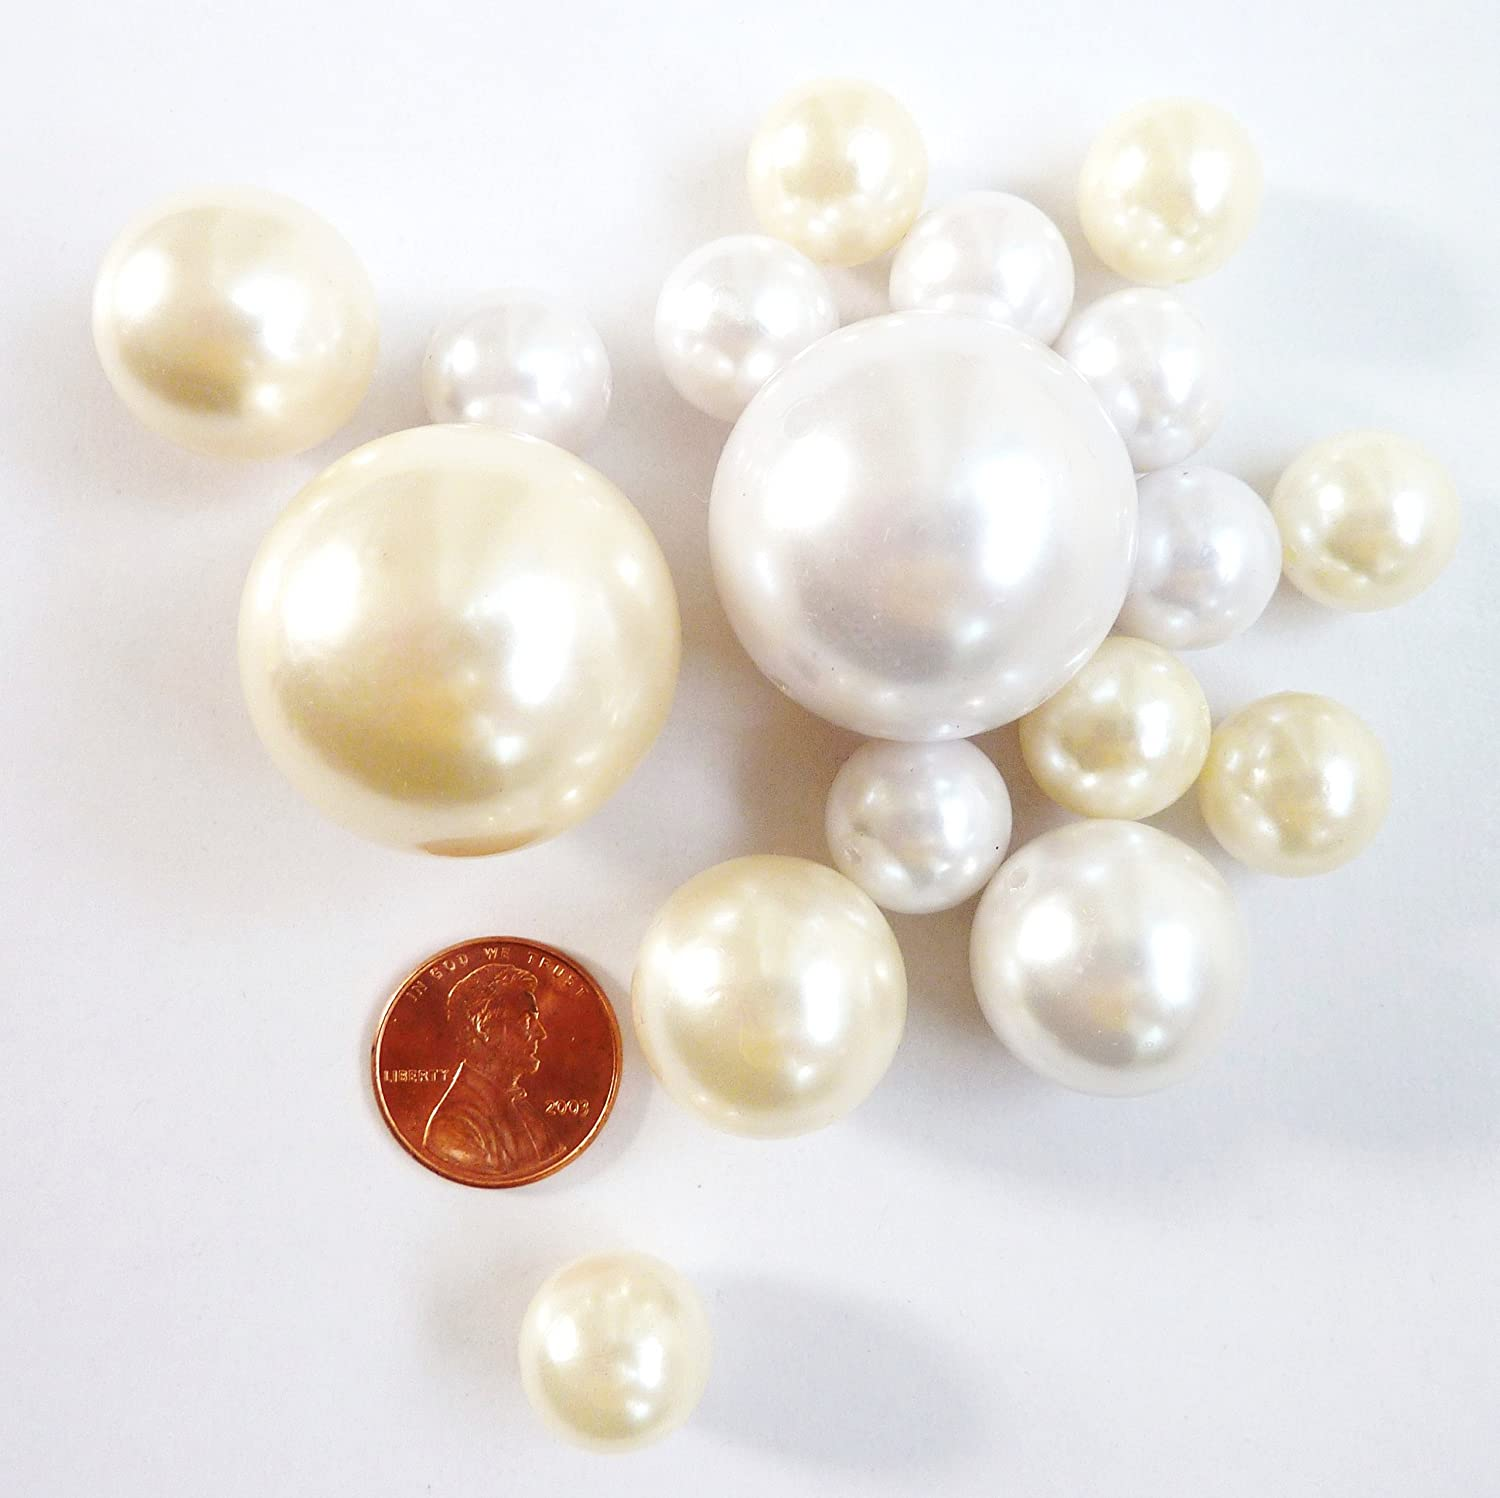 Amazon 40 jumbo assorted sizes ivory pearls and white amazon 40 jumbo assorted sizes ivory pearls and white pearls vase fillers not including the transparent water gels for floating the pearls sold reviewsmspy